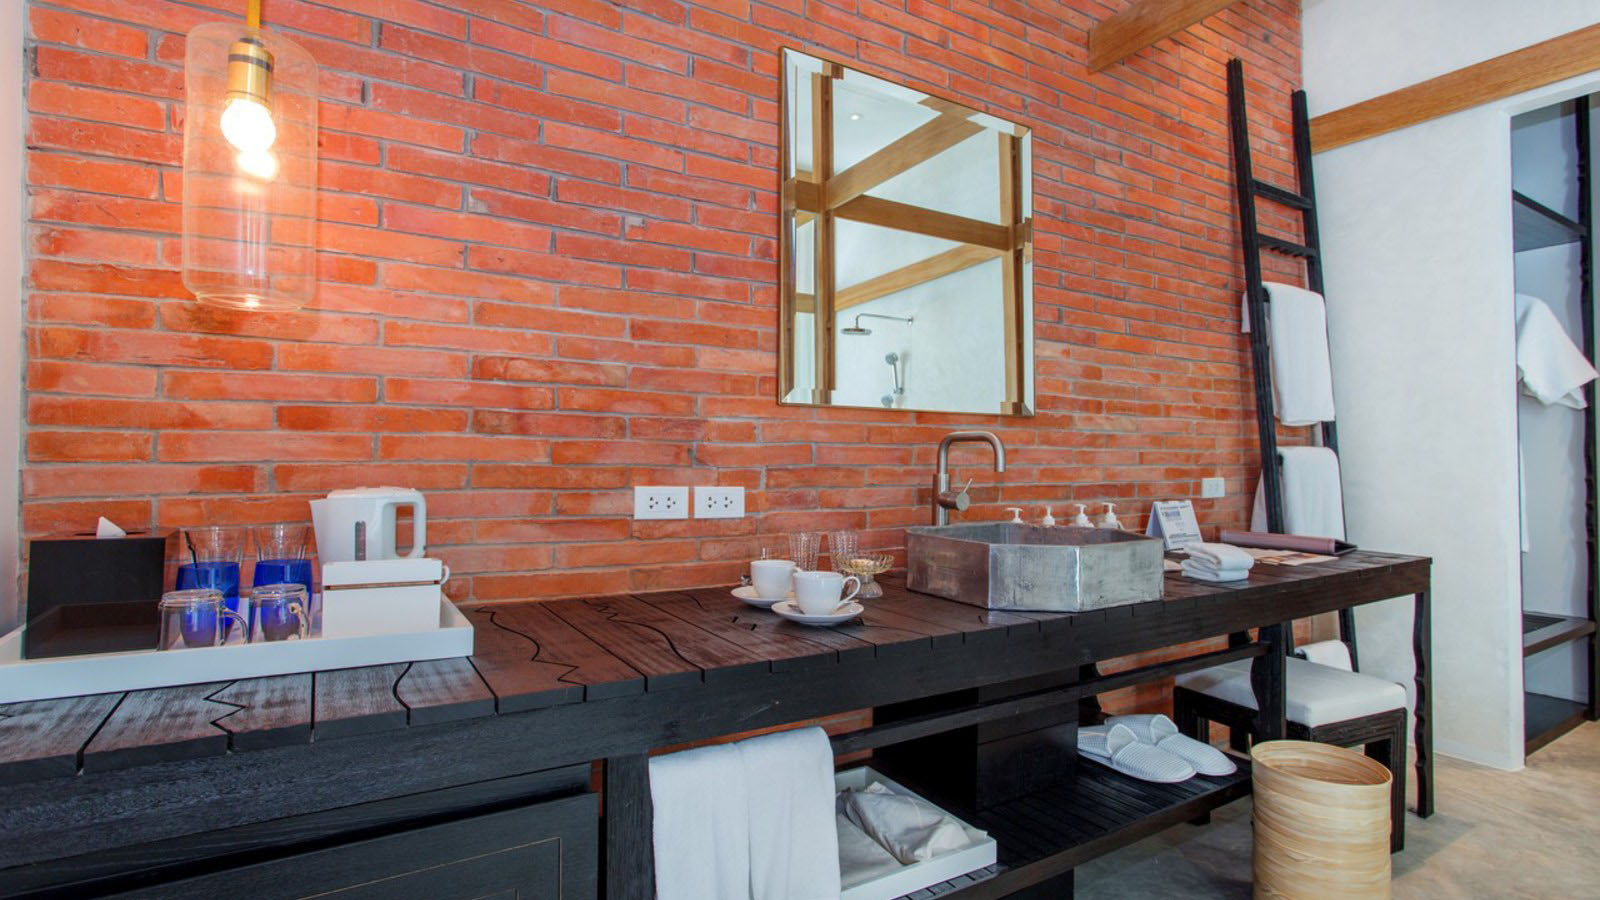 Bathroom With Brick Wall